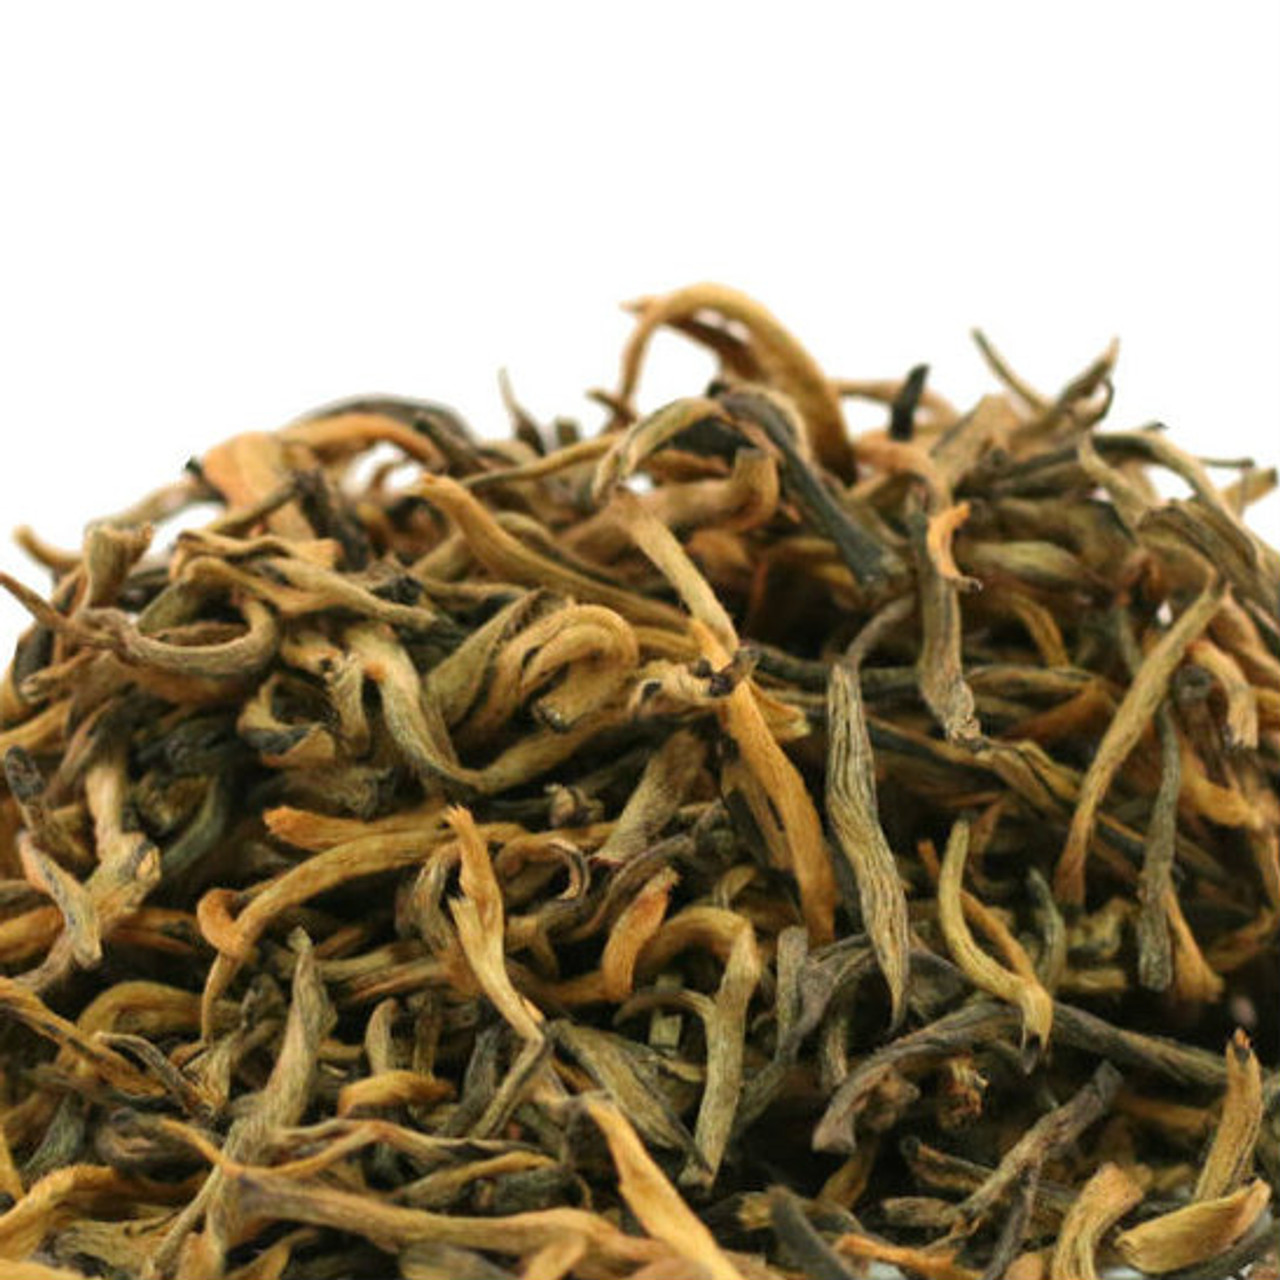 Yunnan Royal Gold is the finest black tea from China's Yunnan Province. Made from only golden tips, it produces a rich body and incredible complexity with exactly the right combination of spicy, fruity, and earthiness that is unmatched by any other black tea. The golden tips yield an infusion that is both sweet and bold. This is one of our finest offerings to date and is truly a spectacular tea.